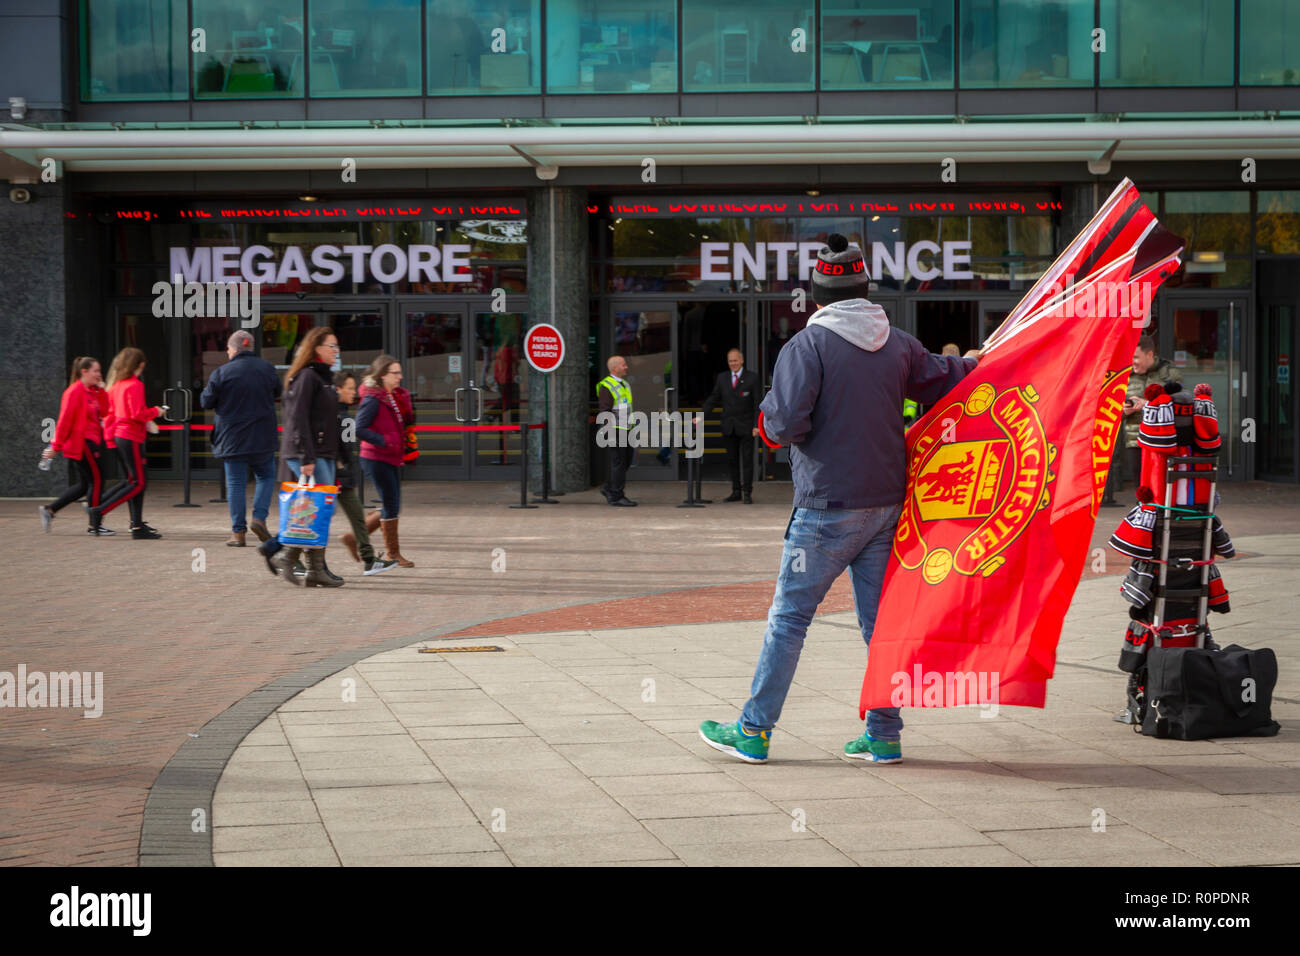 Scalf Sellers on Match Day outside Old Trafford Football Ground. Home of Manchester United Football Club. - Stock Image